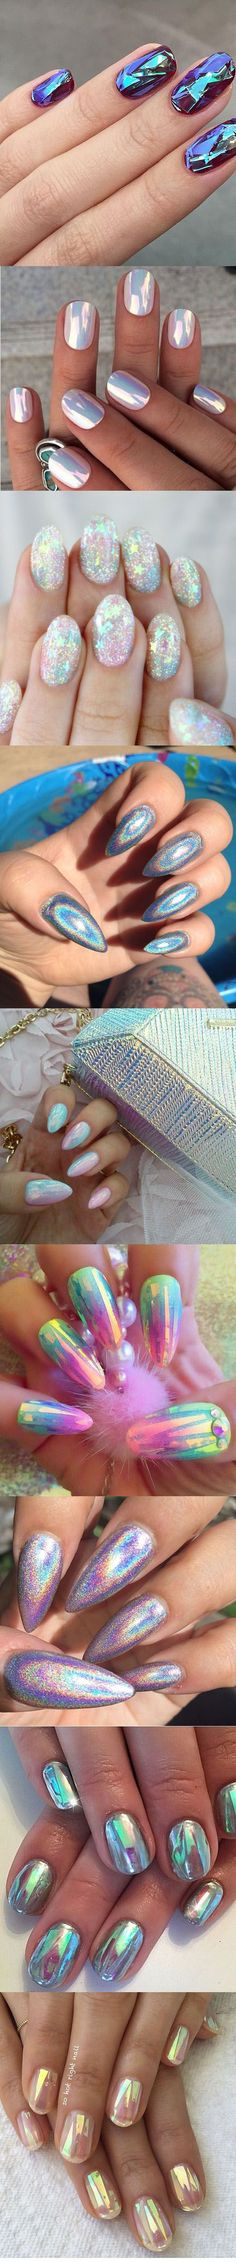 Holographic mermaid nails #manicure